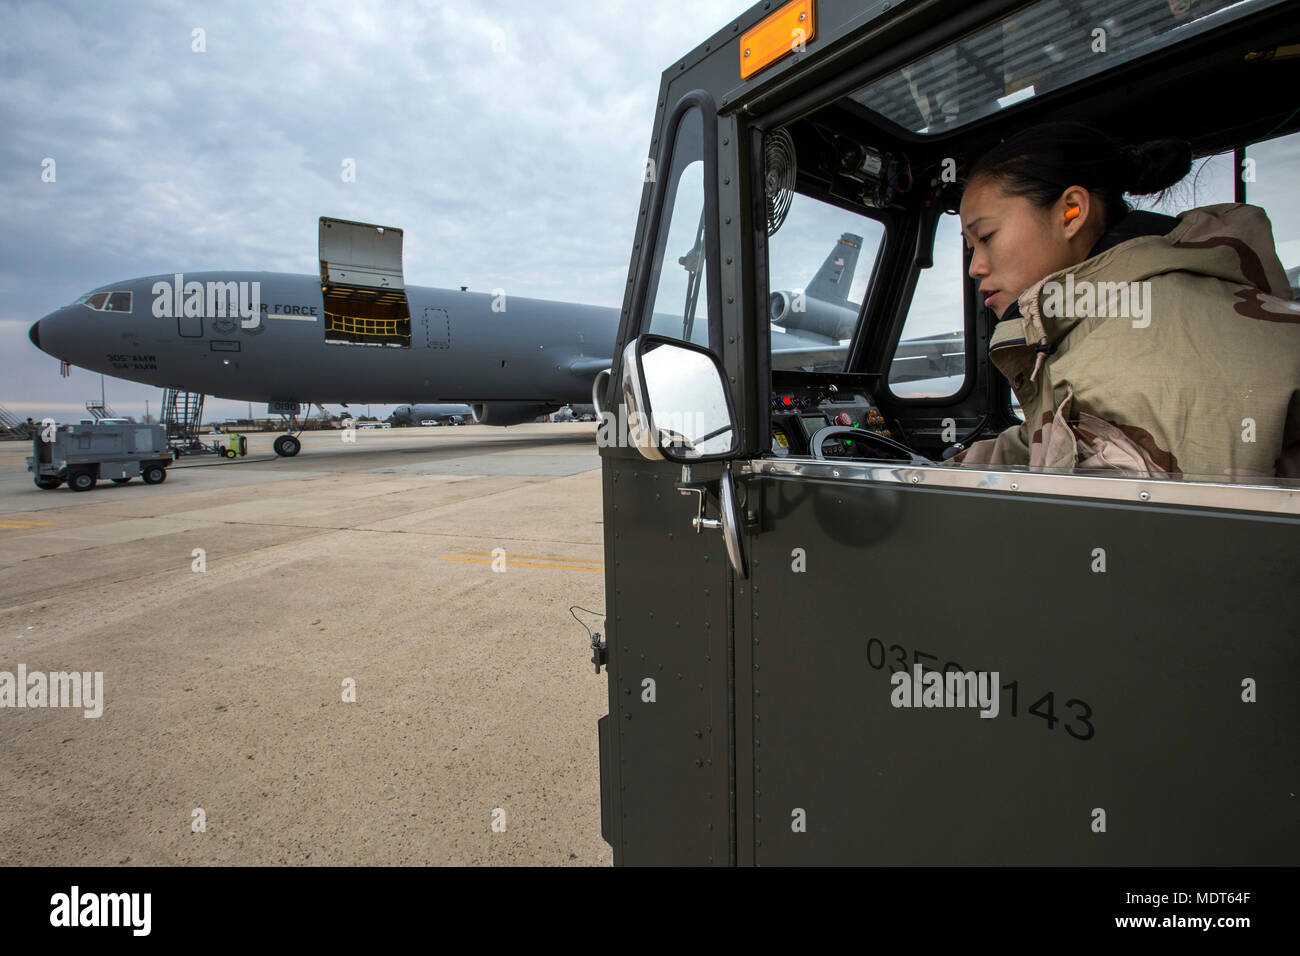 U.S. Air Force Senior Airman Vince Tsang, an Aerial Porter with the 88th Aerial Port Squadron, 514th Air Mobility Wing, checks the rear view mirror of a K-loader while in Mission Oriented Protective Posture level two gear during a KC-10 Extender cargo loading exercise at Joint Base McGuire-Dix-Lakehurst, N.J., Dec. 3, 2017.  (U.S. Air Force photo by Master Sgt. Mark C. Olsen) - Stock Image